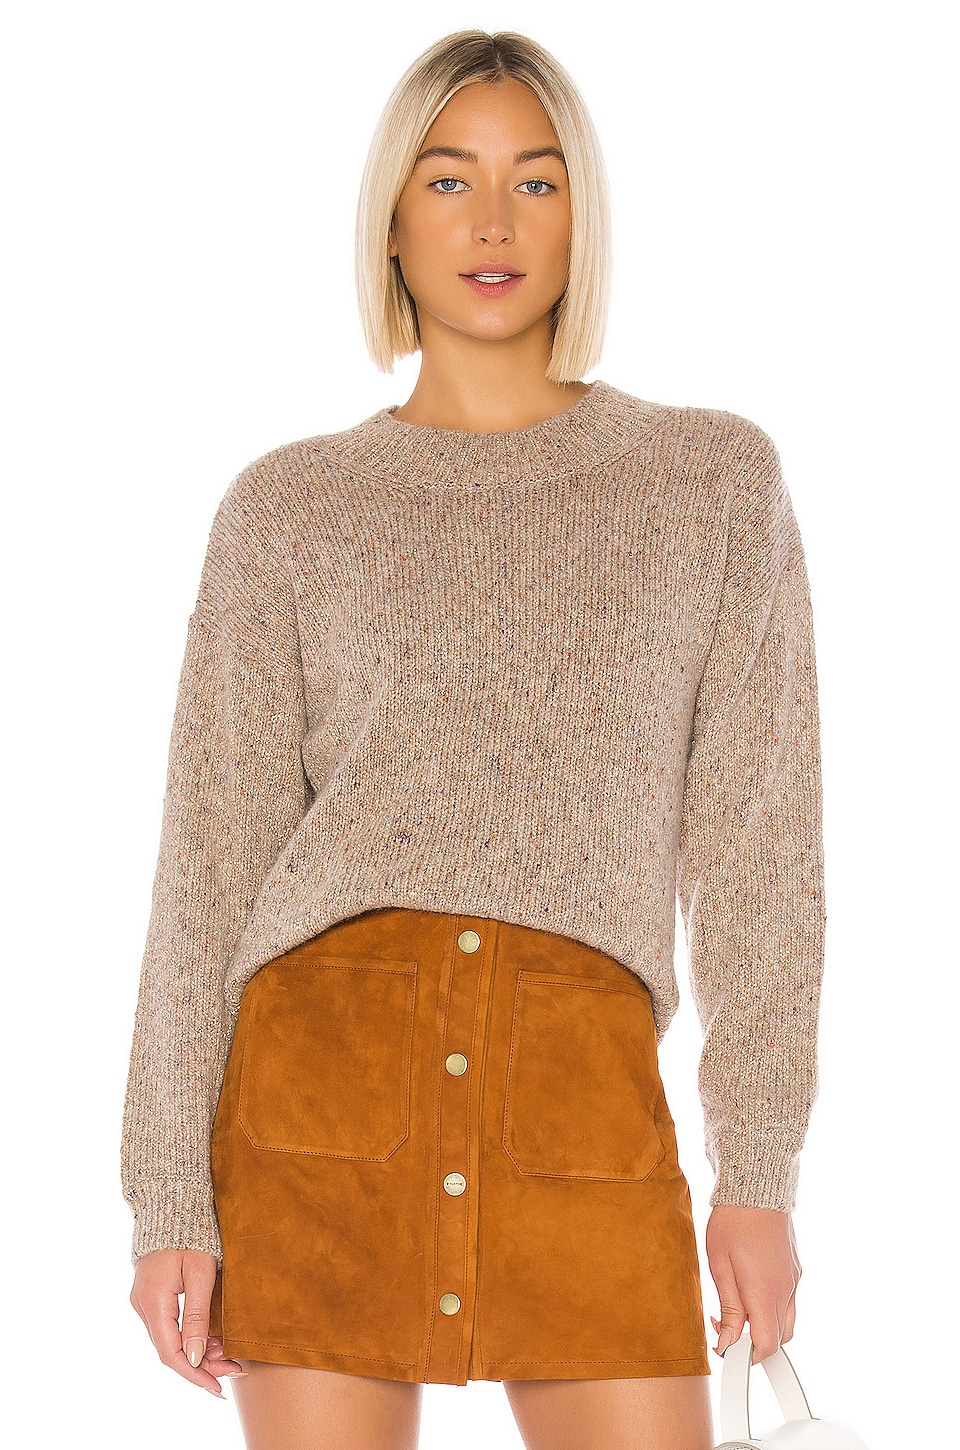 A.P.C. Kate Pullover in Beige Clair Chine